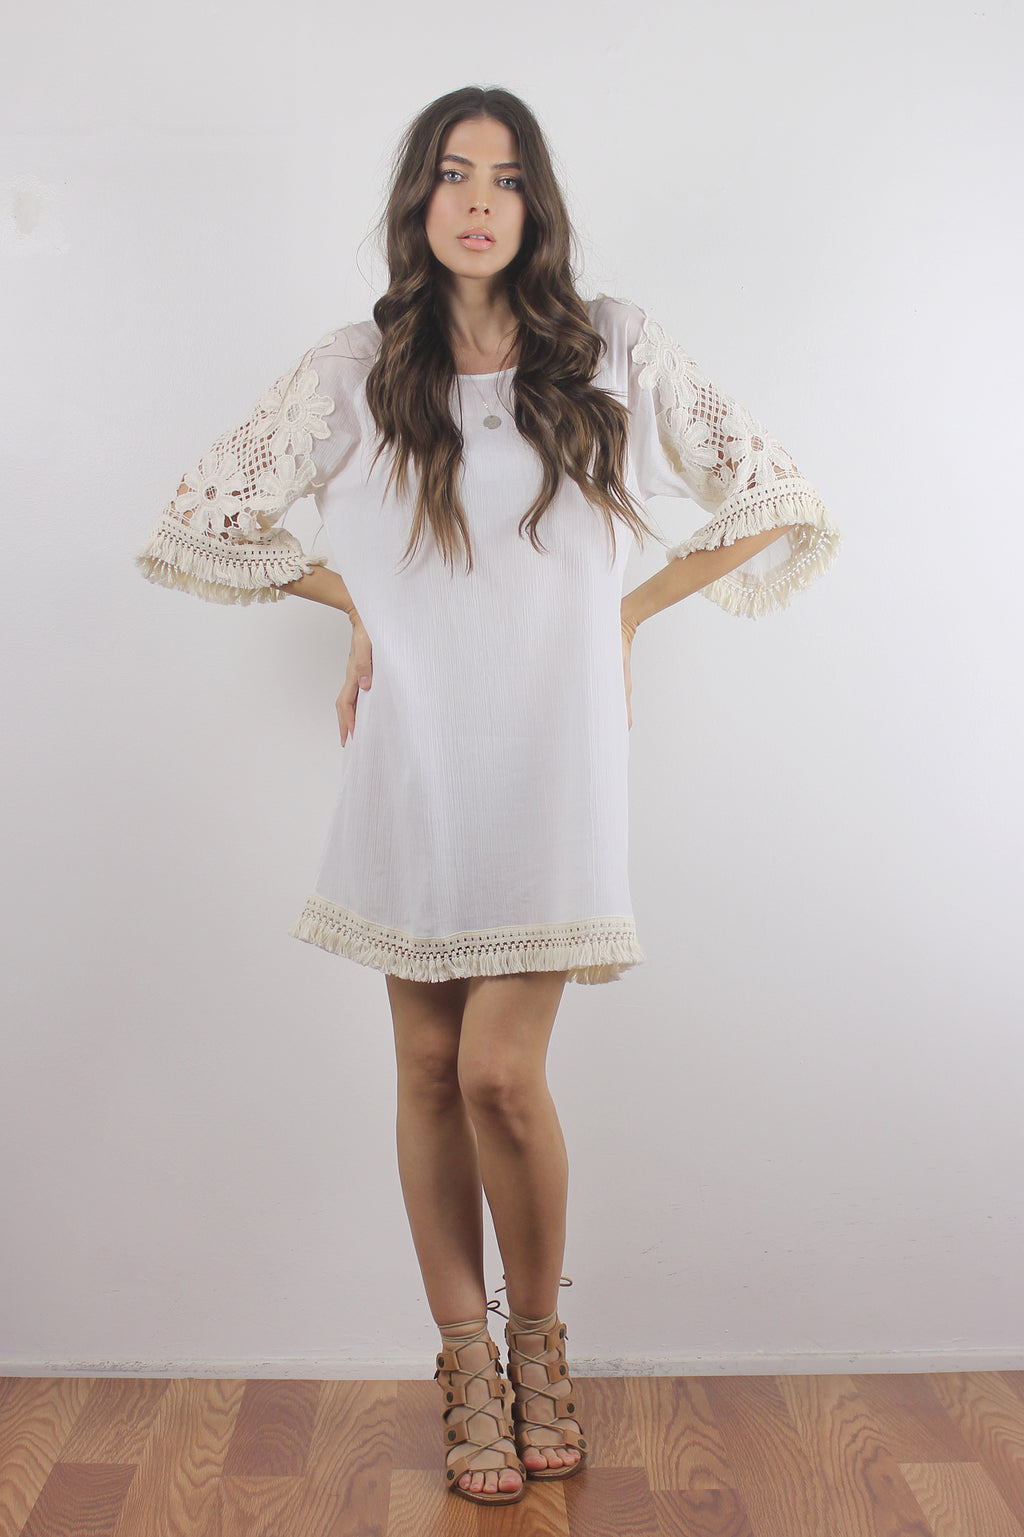 Crochet sleeve dress with fringe detail.